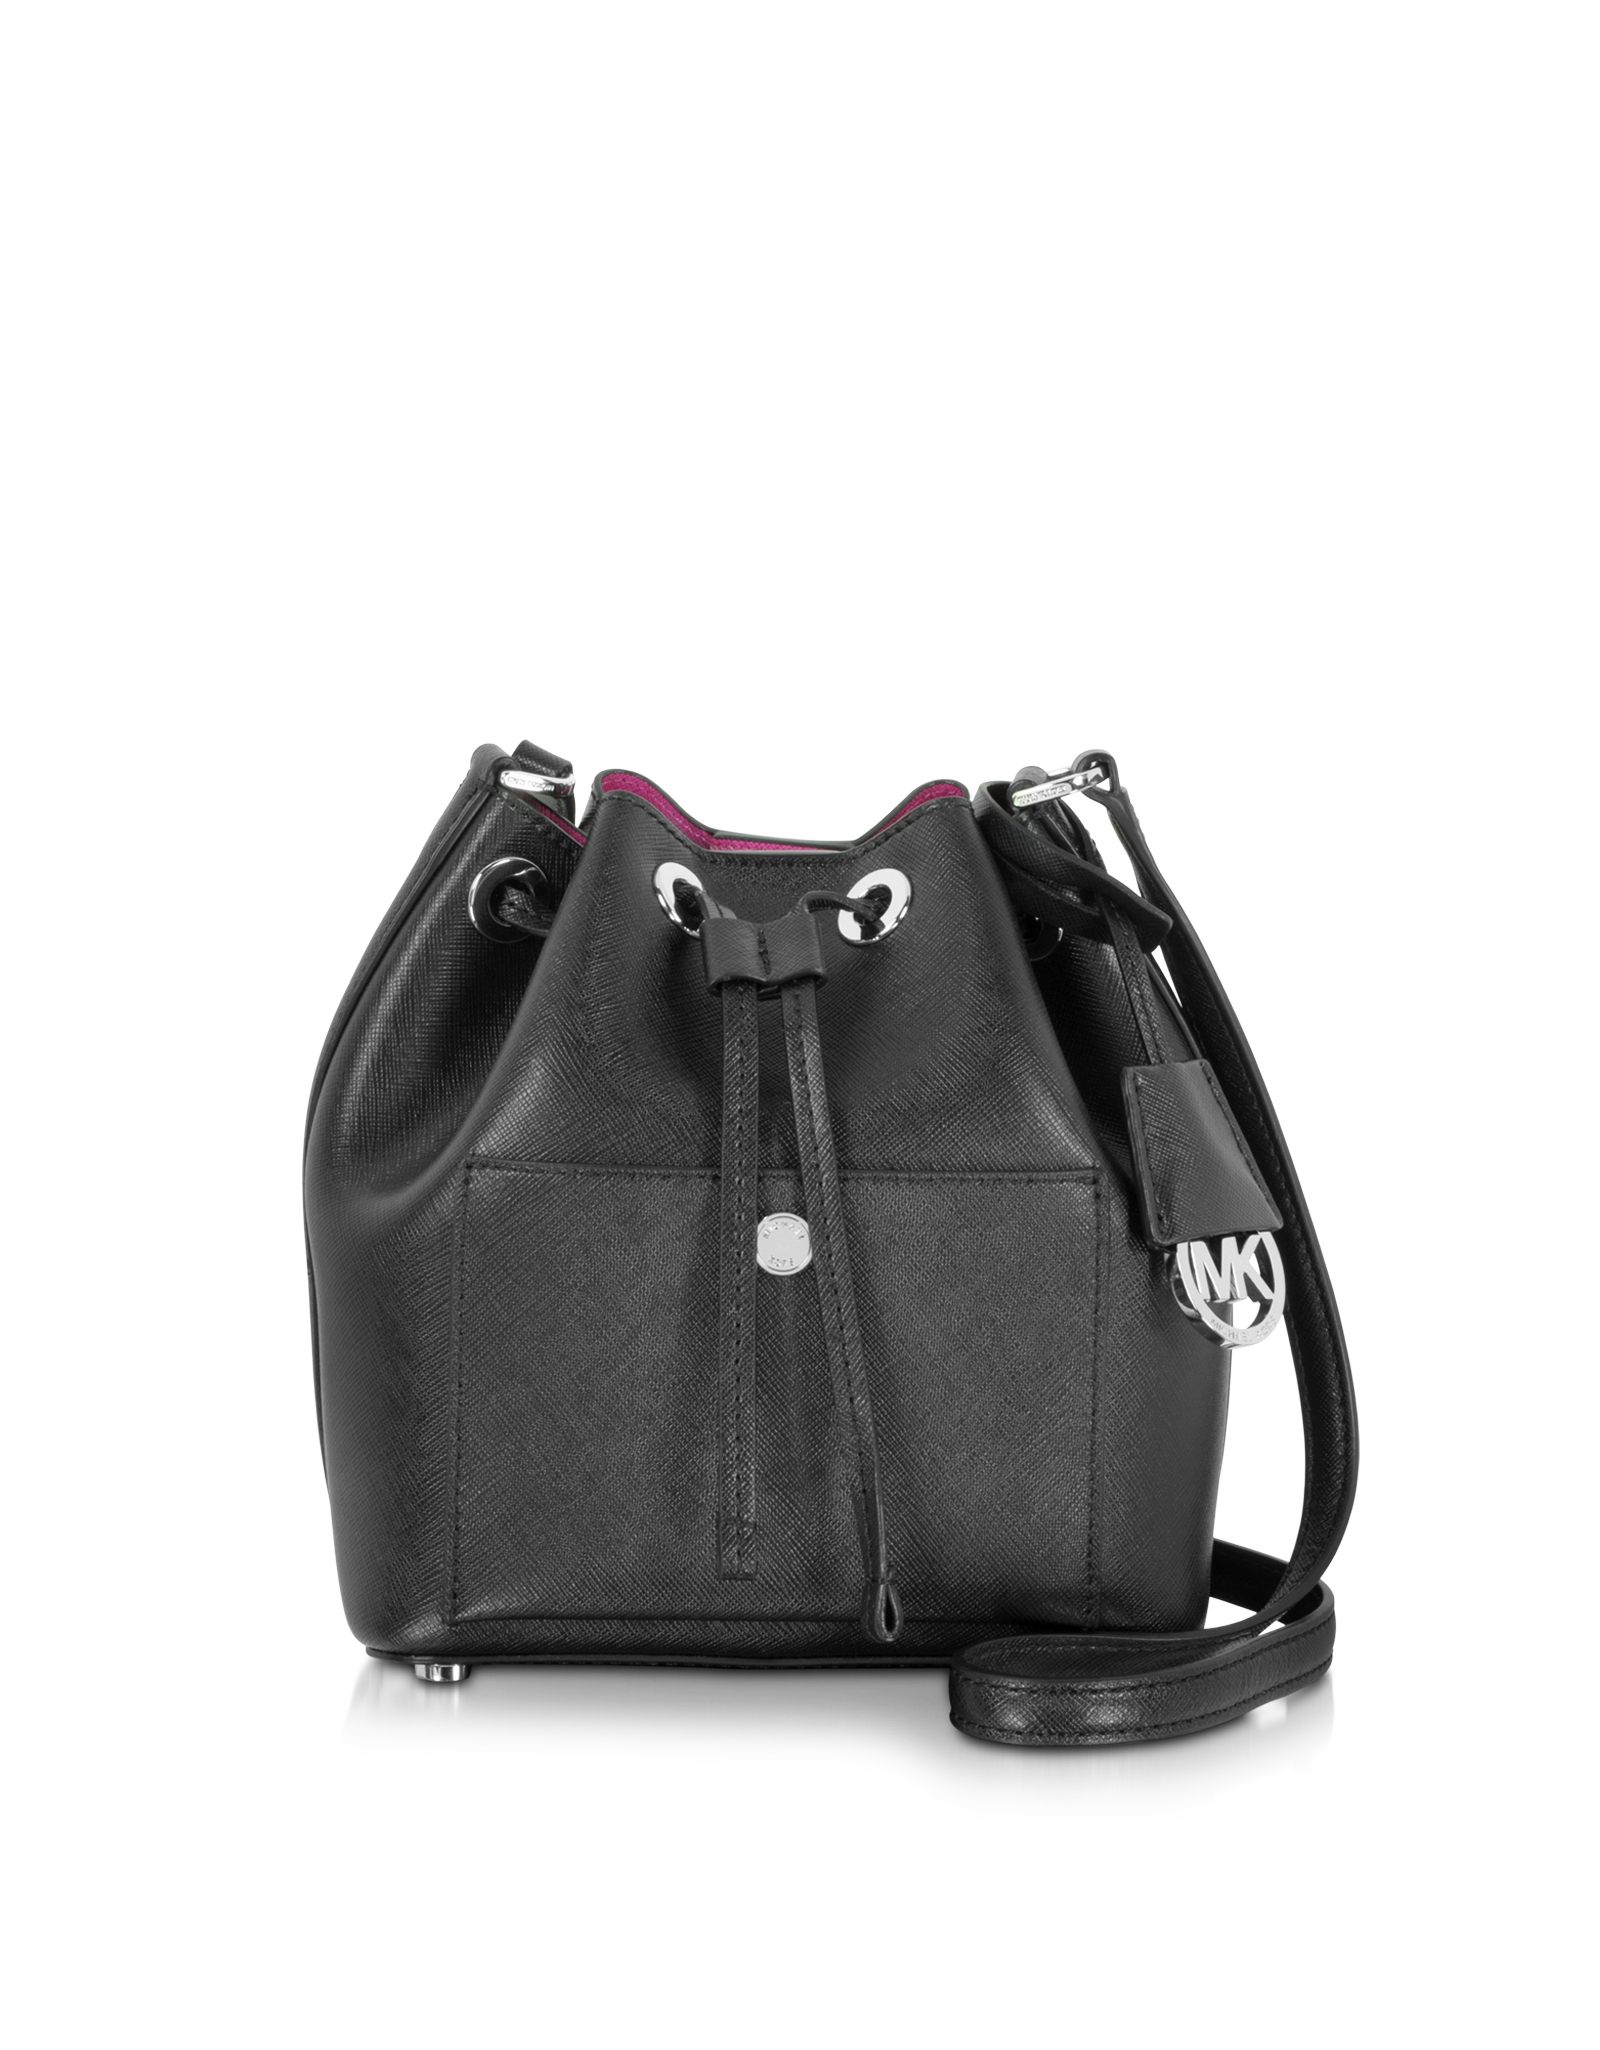 black and gray michael kors bag ya6d  Gallery Women's Bucket Bags